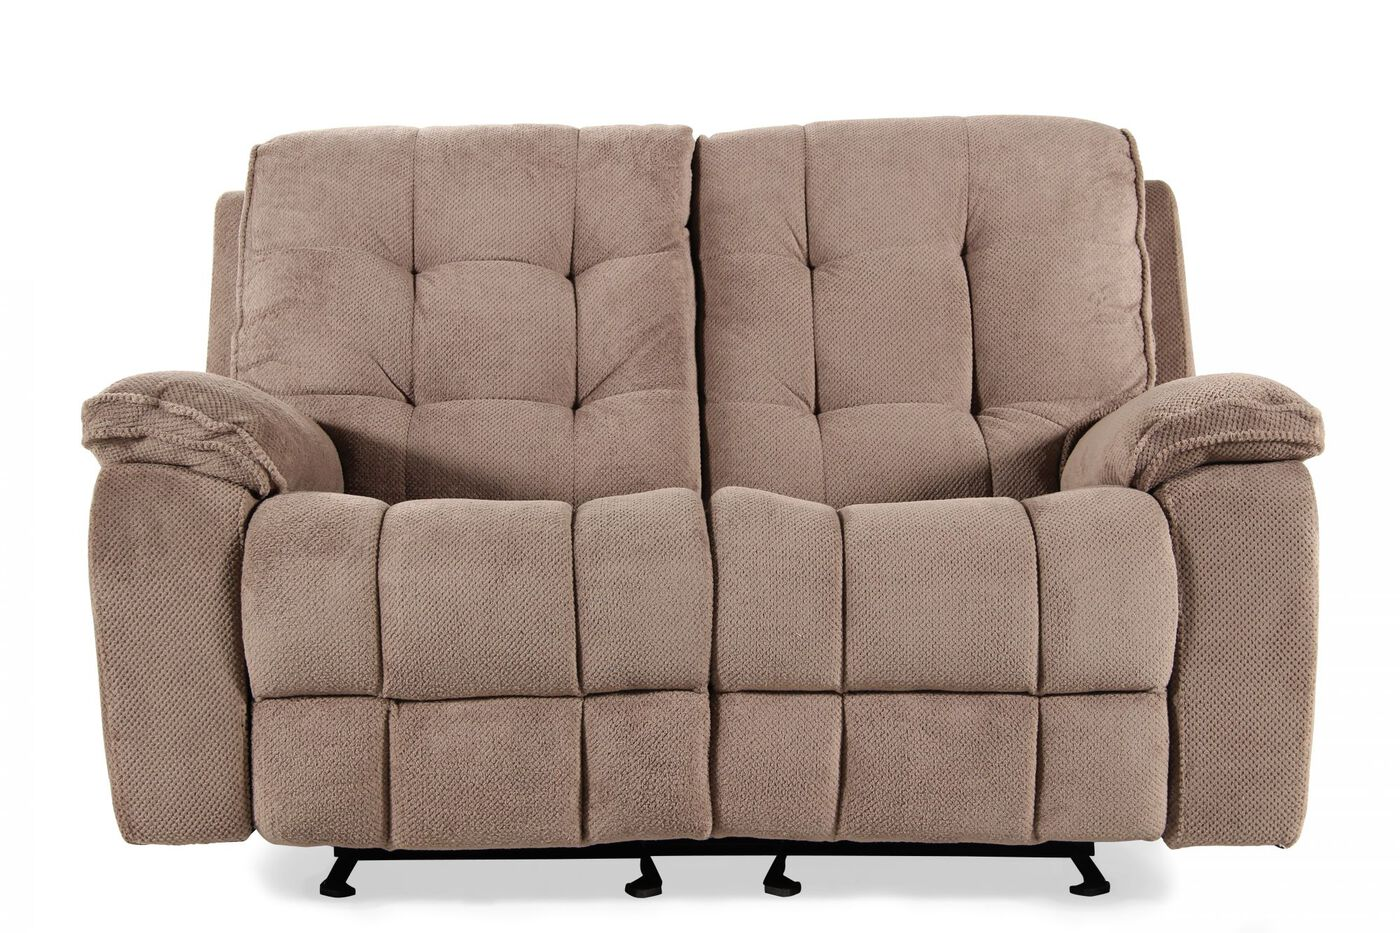 Prime Resources Conrad Dakota Grey Glider Loveseat Mathis Brothers Furniture